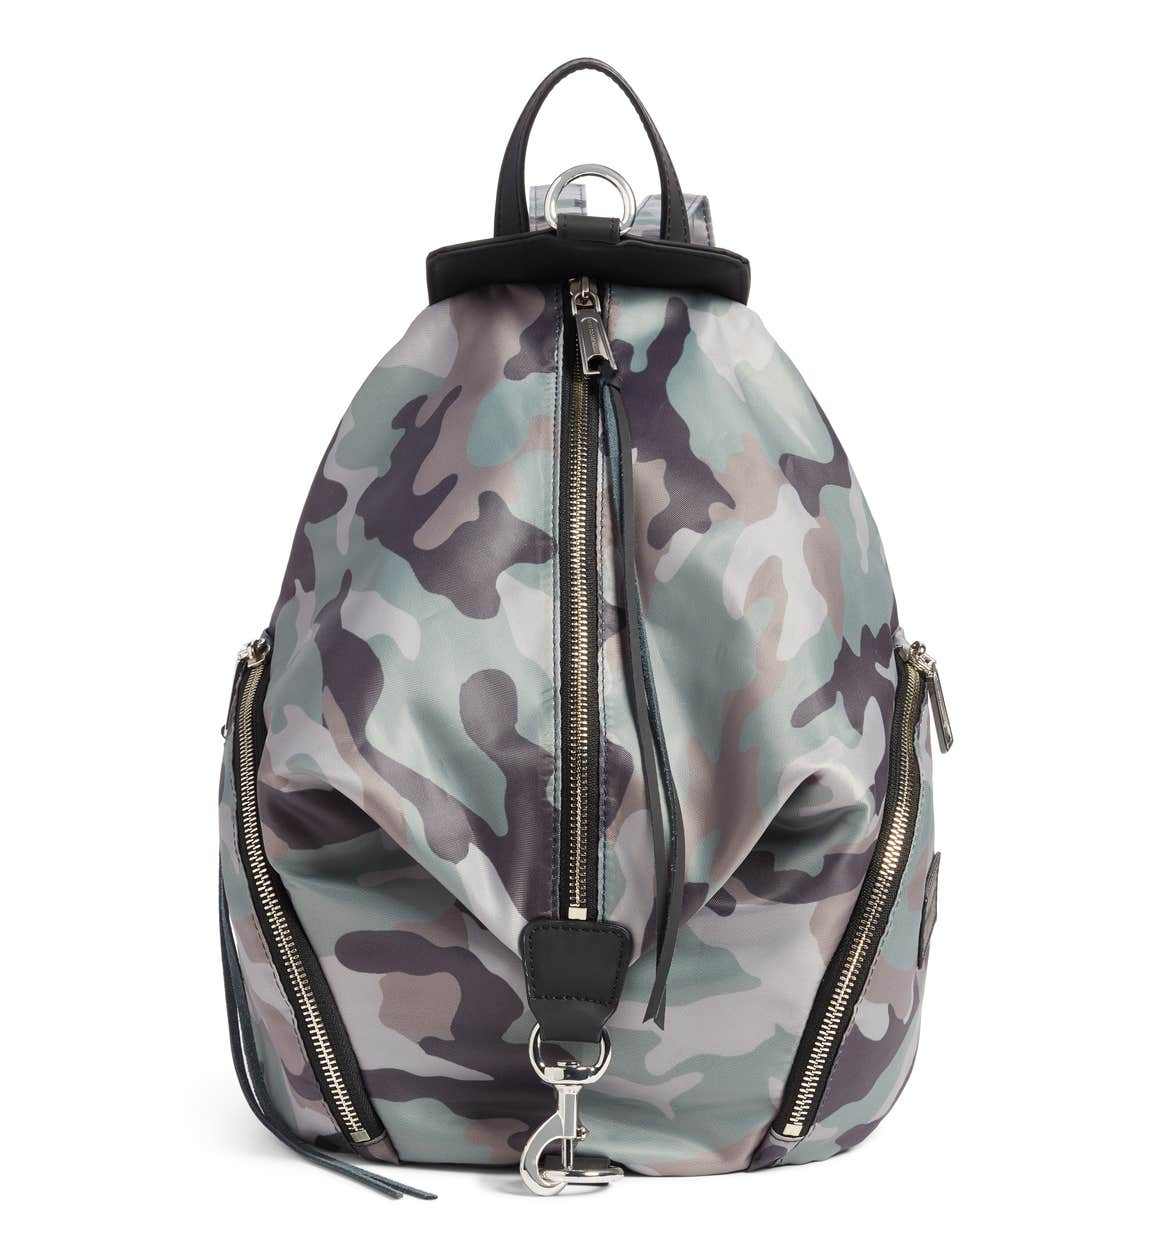 Cute camo backpack